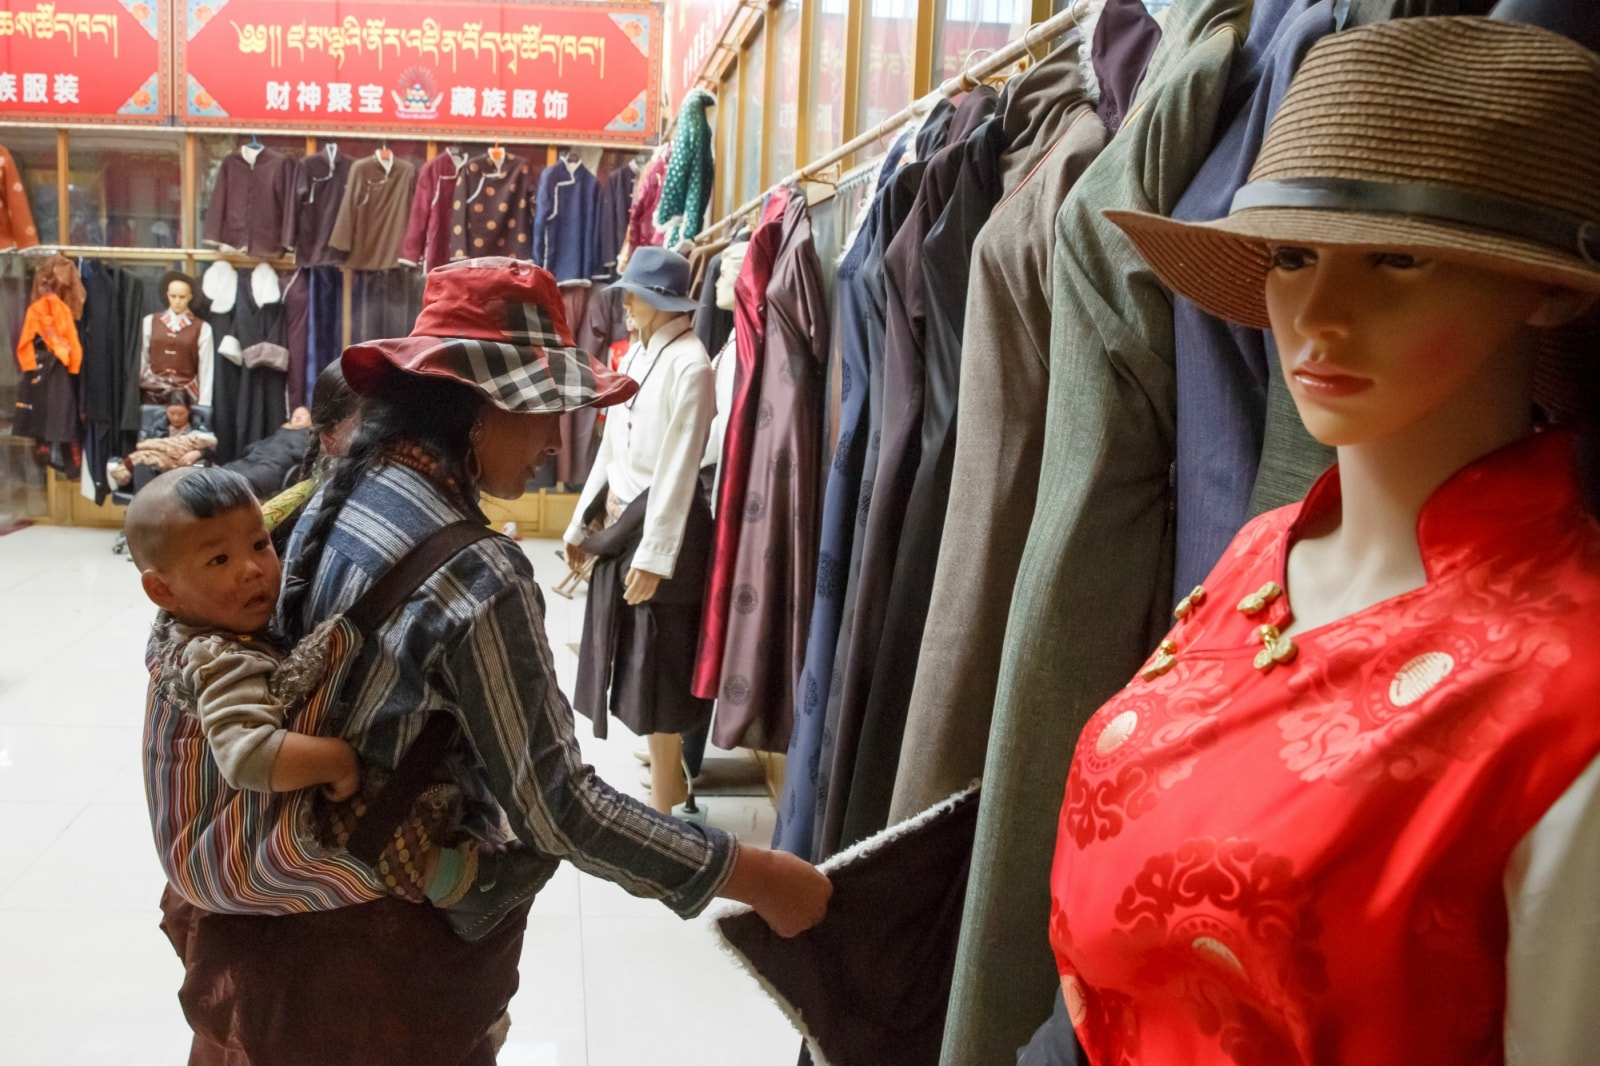 A Tibetan woman carrying a child looks at clothes in a shop in the largely ethnic Tibetan town of Rebkong, Qinghai province, China March 9, 2019. REUTERS/Thomas Peter